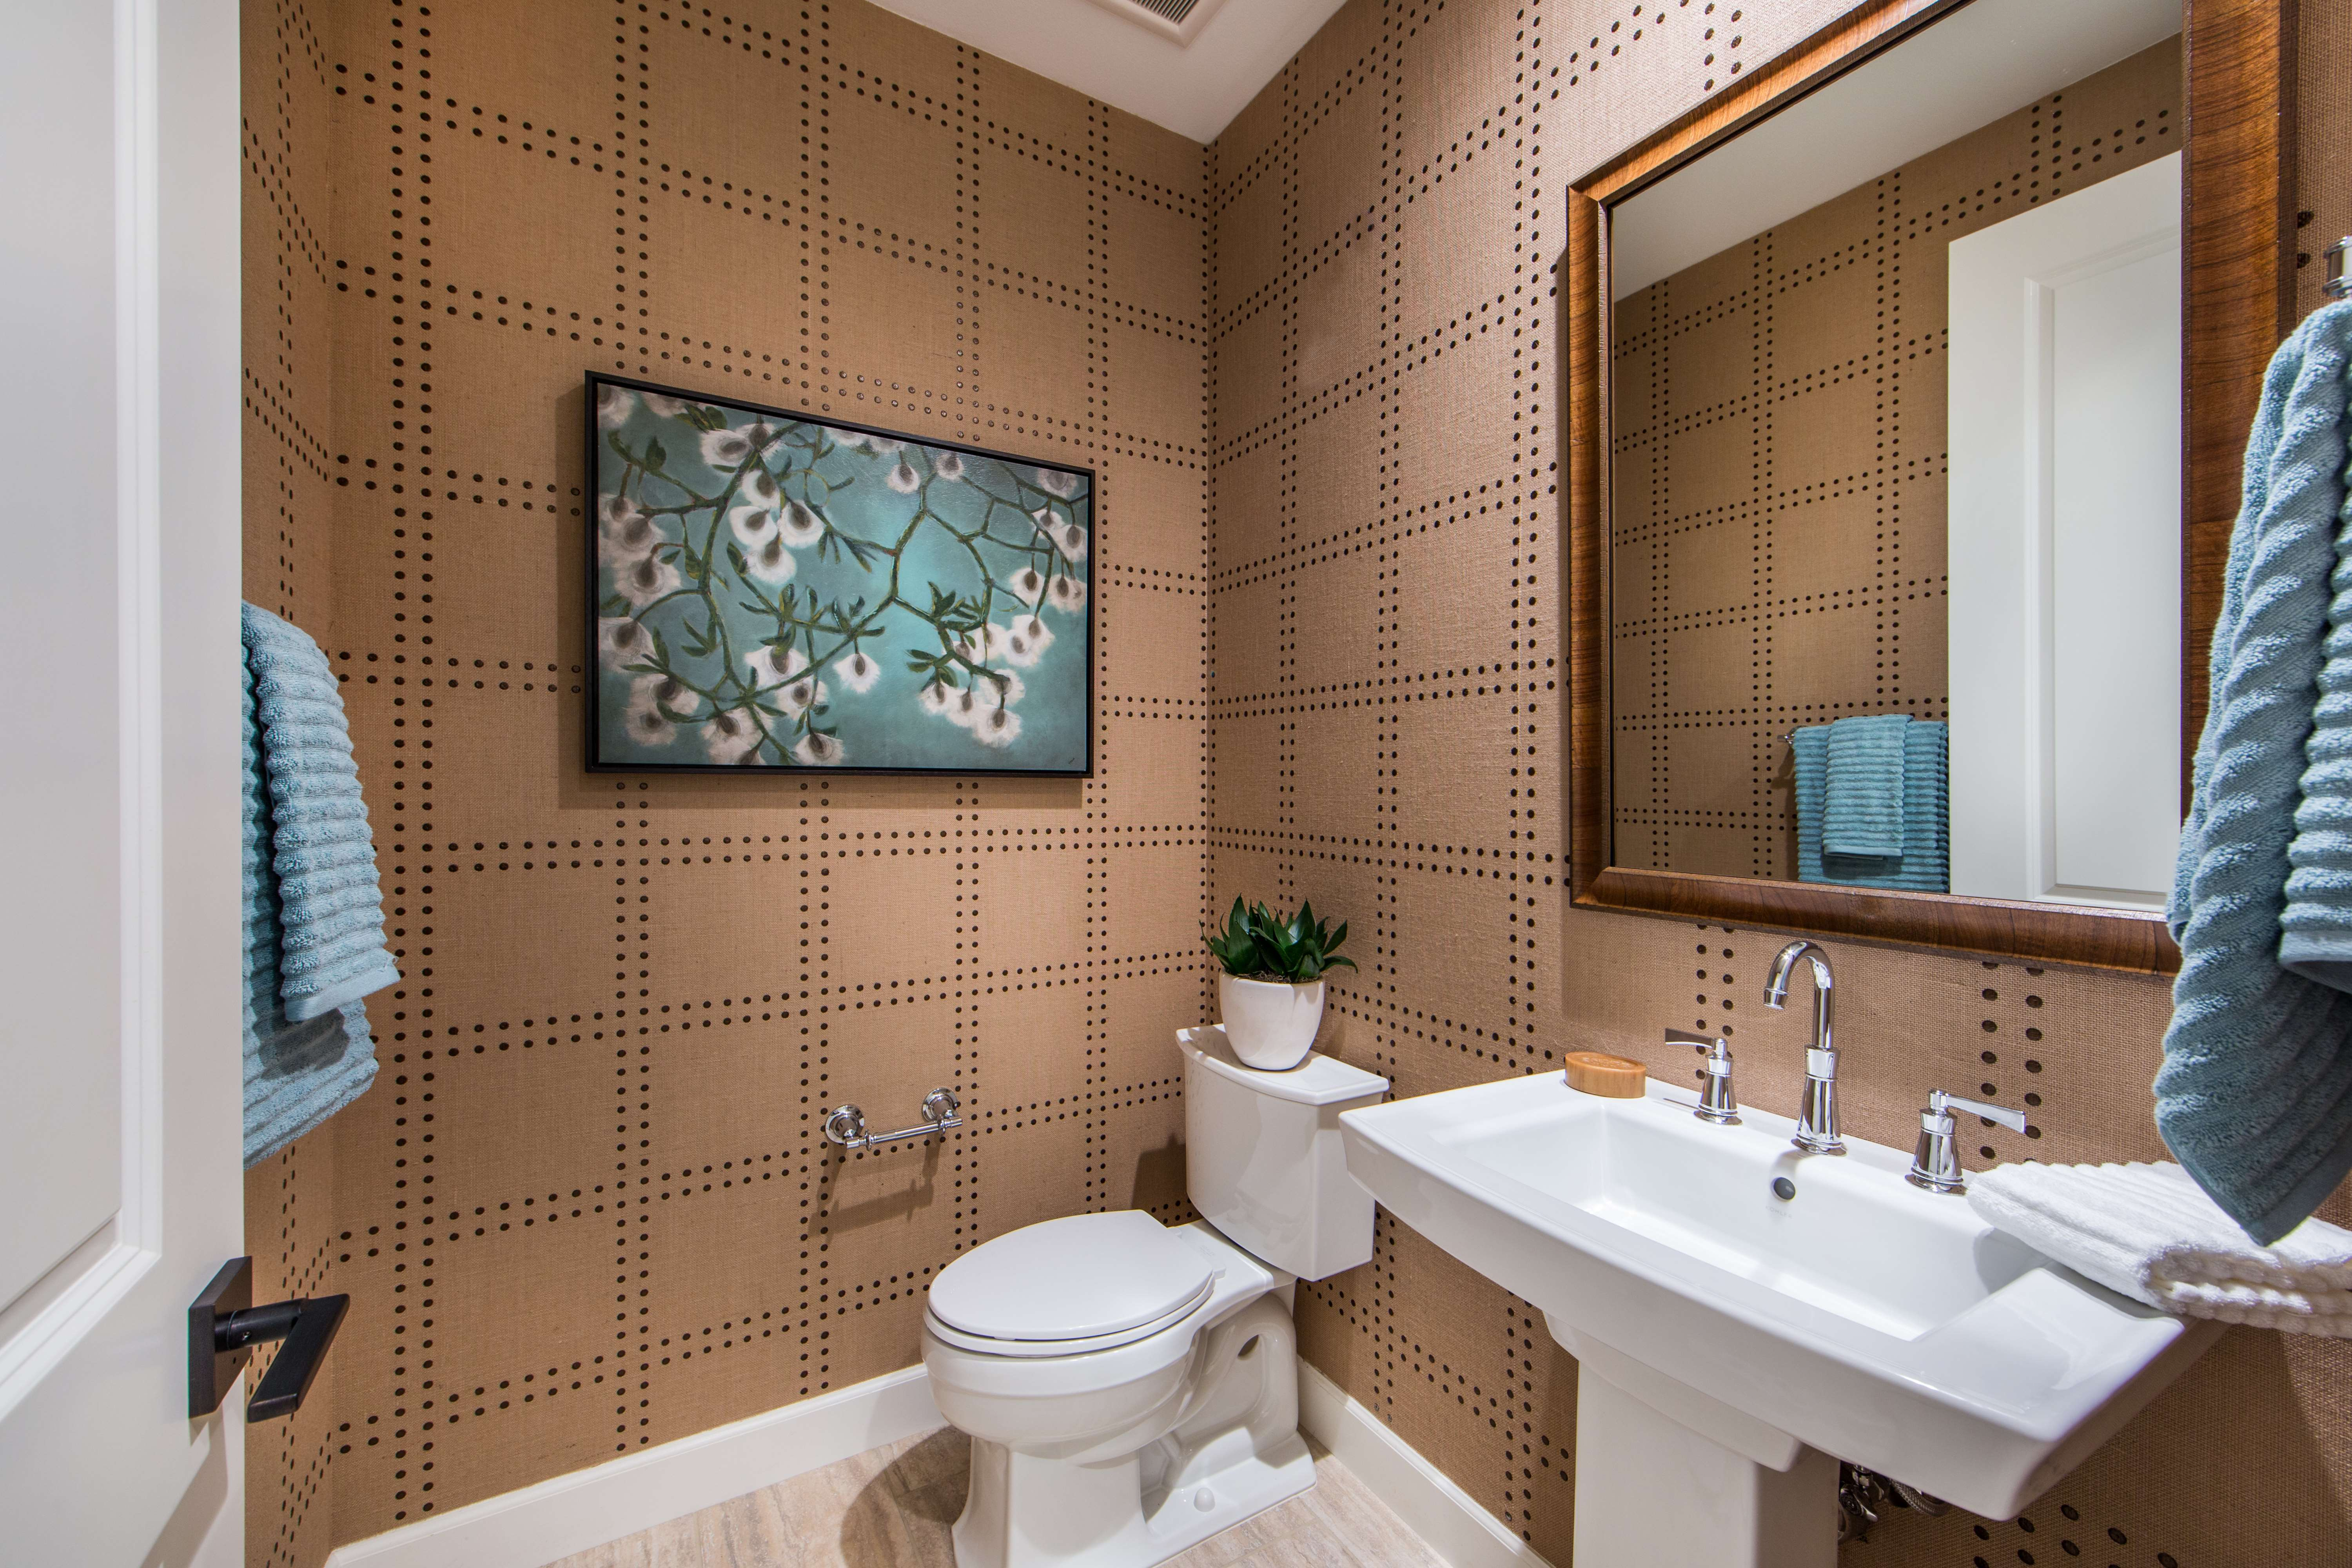 Powder Room at Marin Residence 1 in Irvine